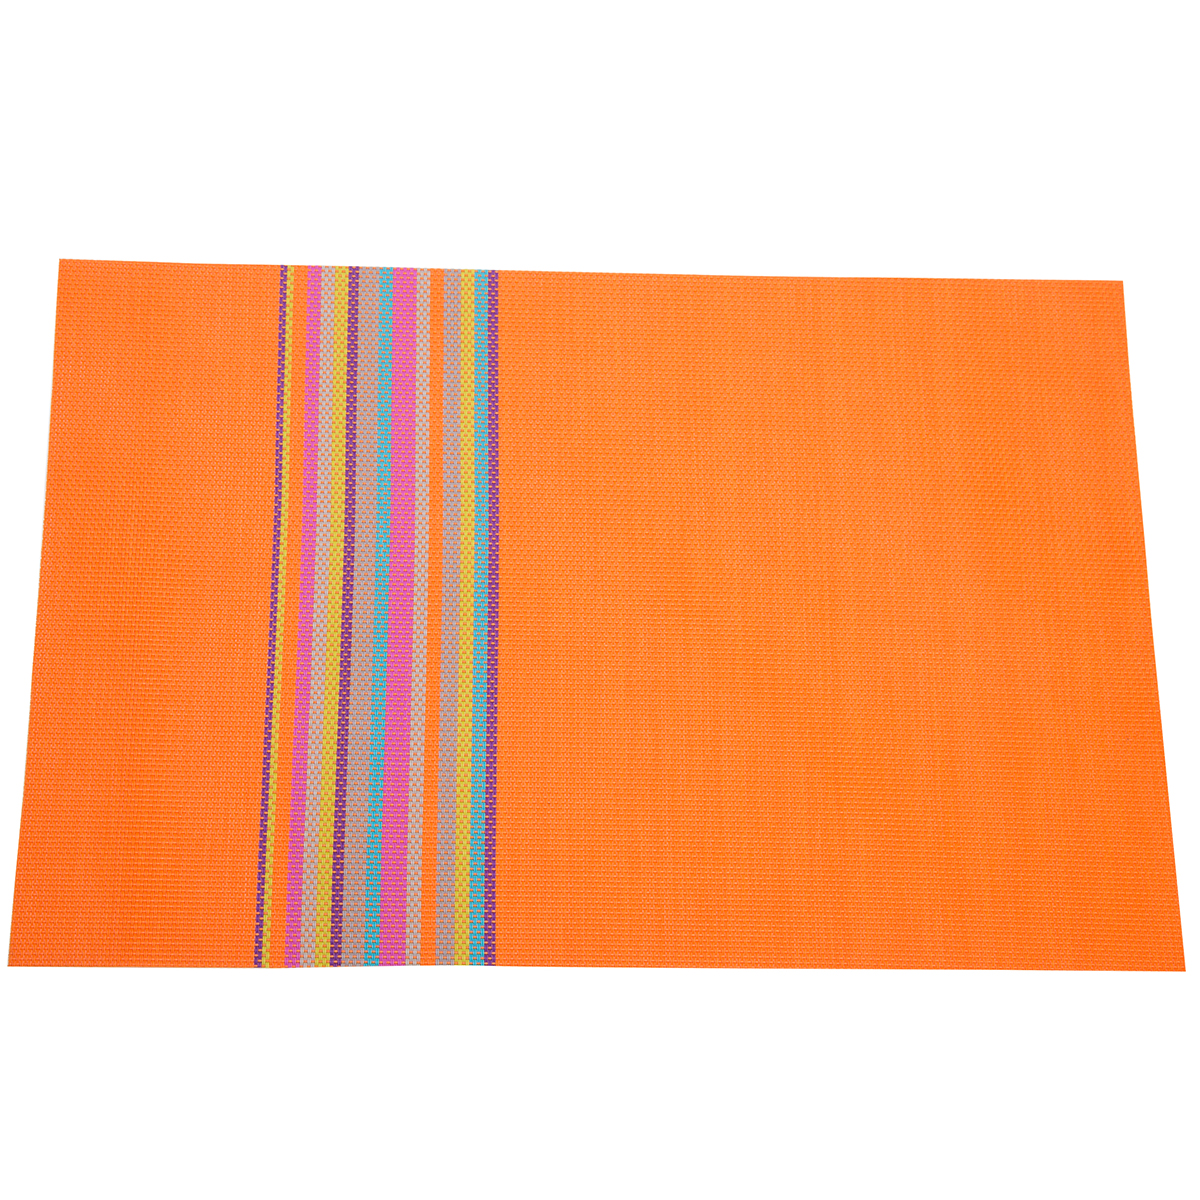 Heat insulation stain resistant woven vinyl placemats 18 for Table placemats